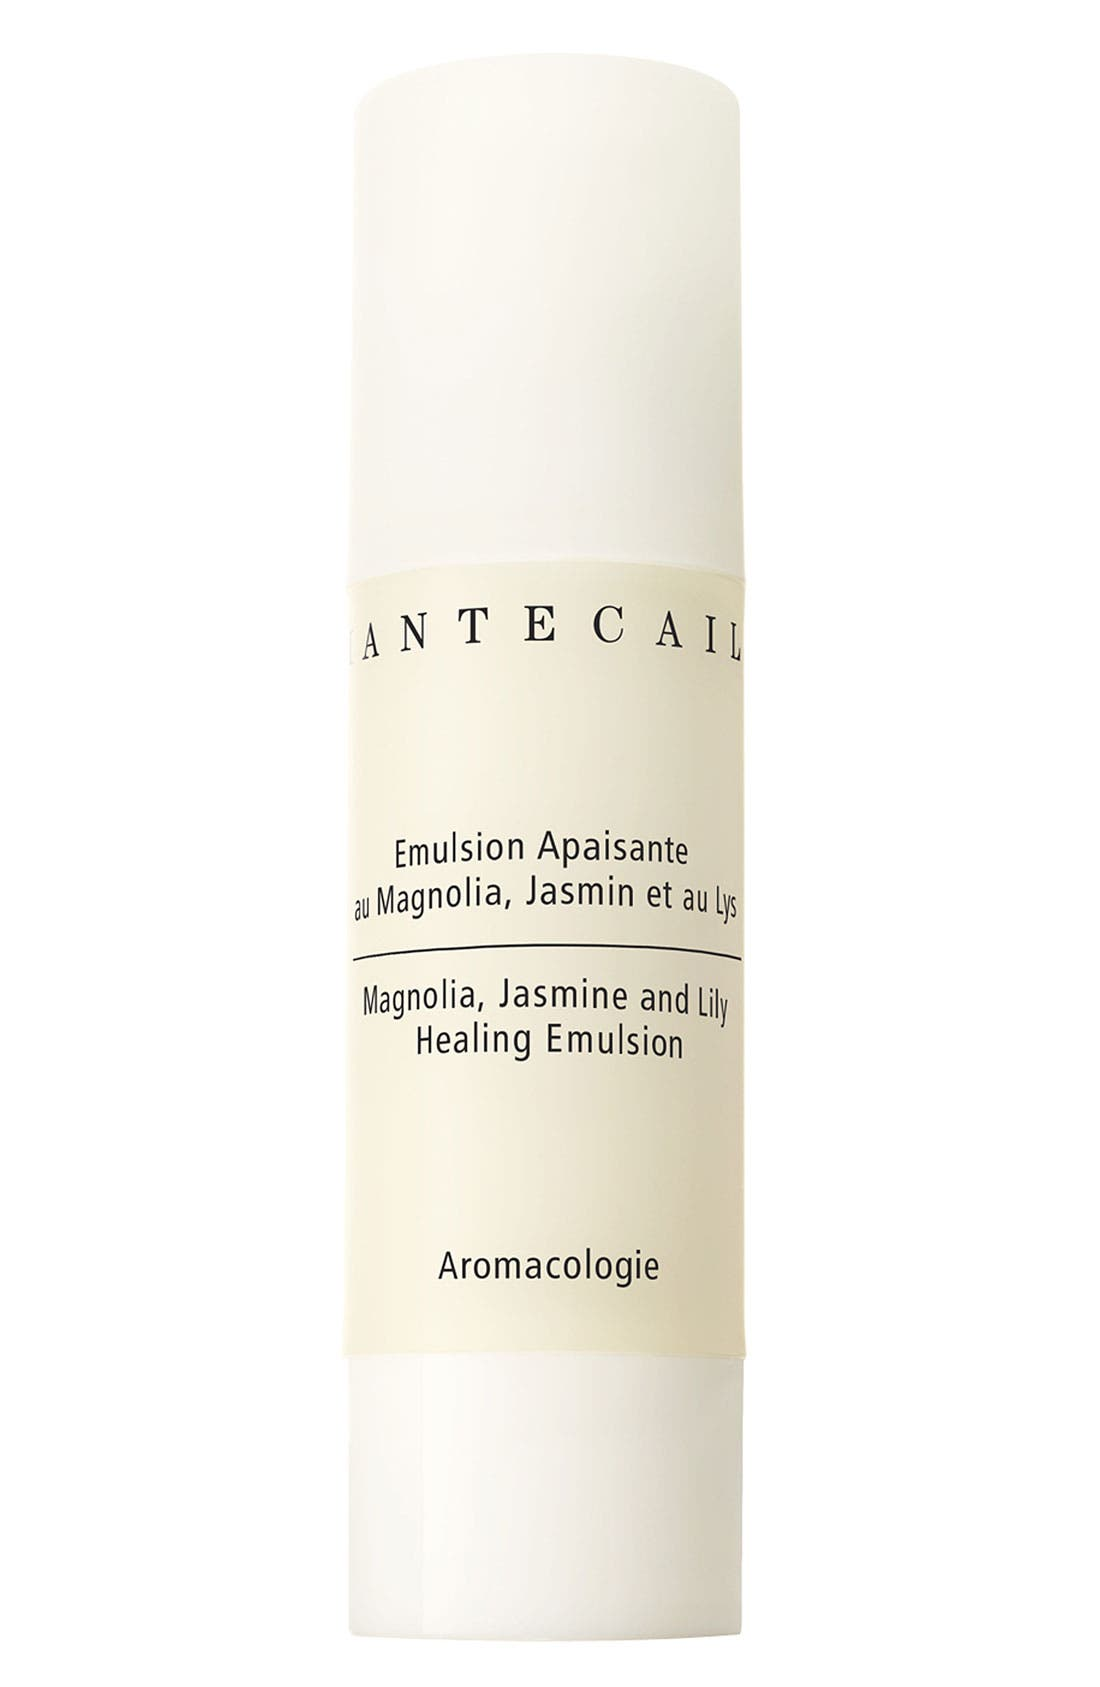 Chantecaille Magnolia, Jasmine & Lily Healing Emulsion